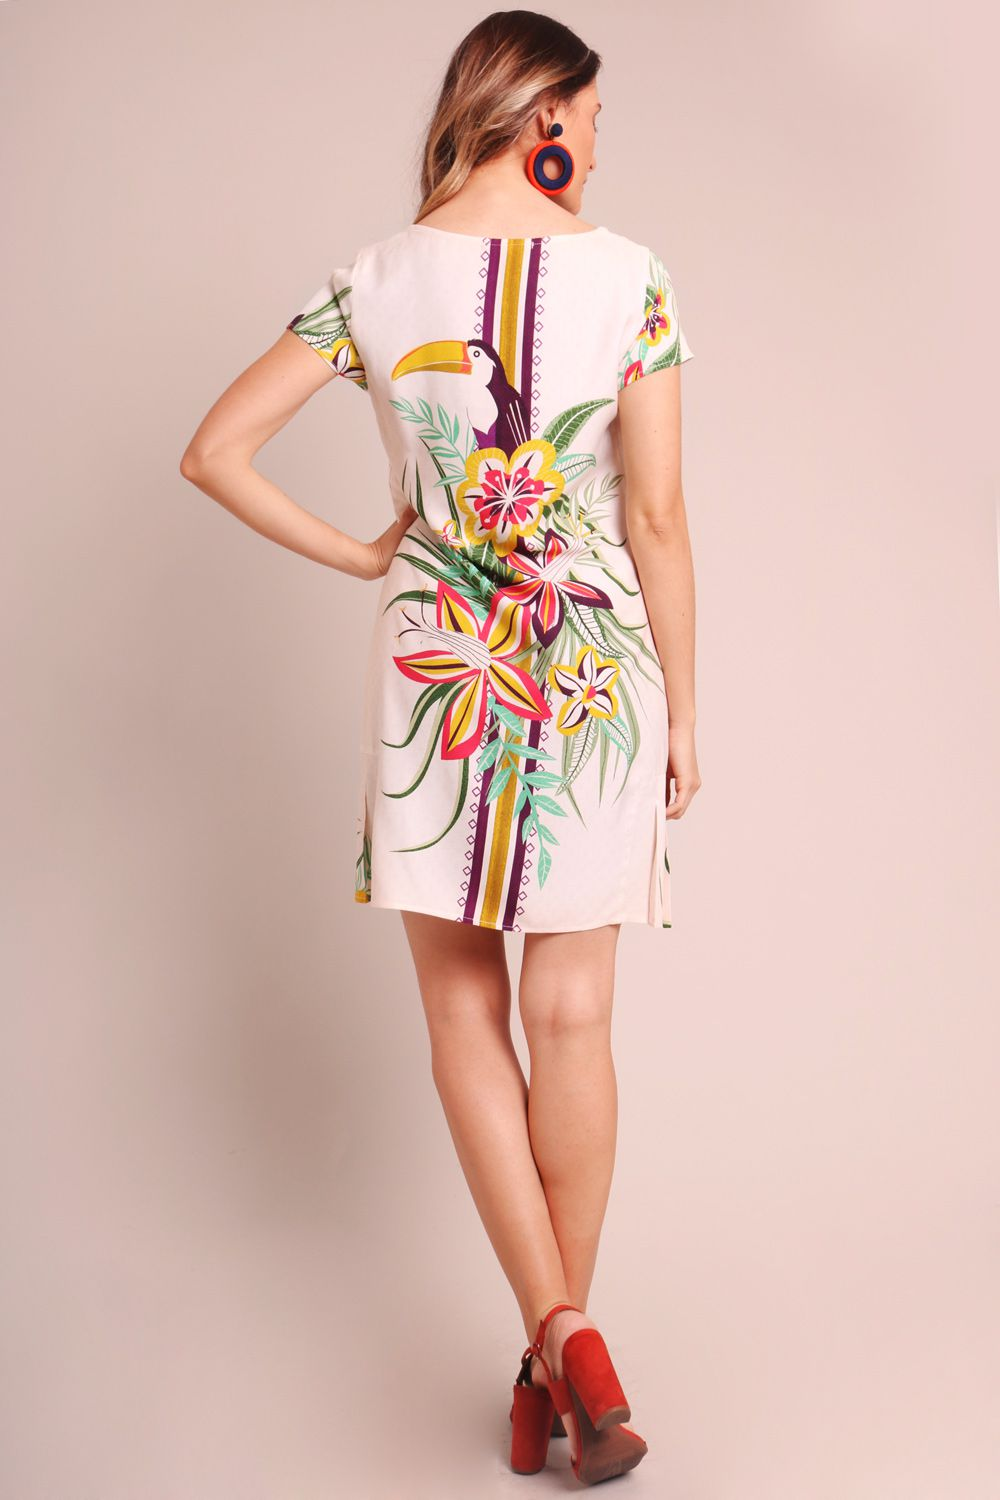 VESTIDO ESTAMPADO TUCANEAR OFF WHITE